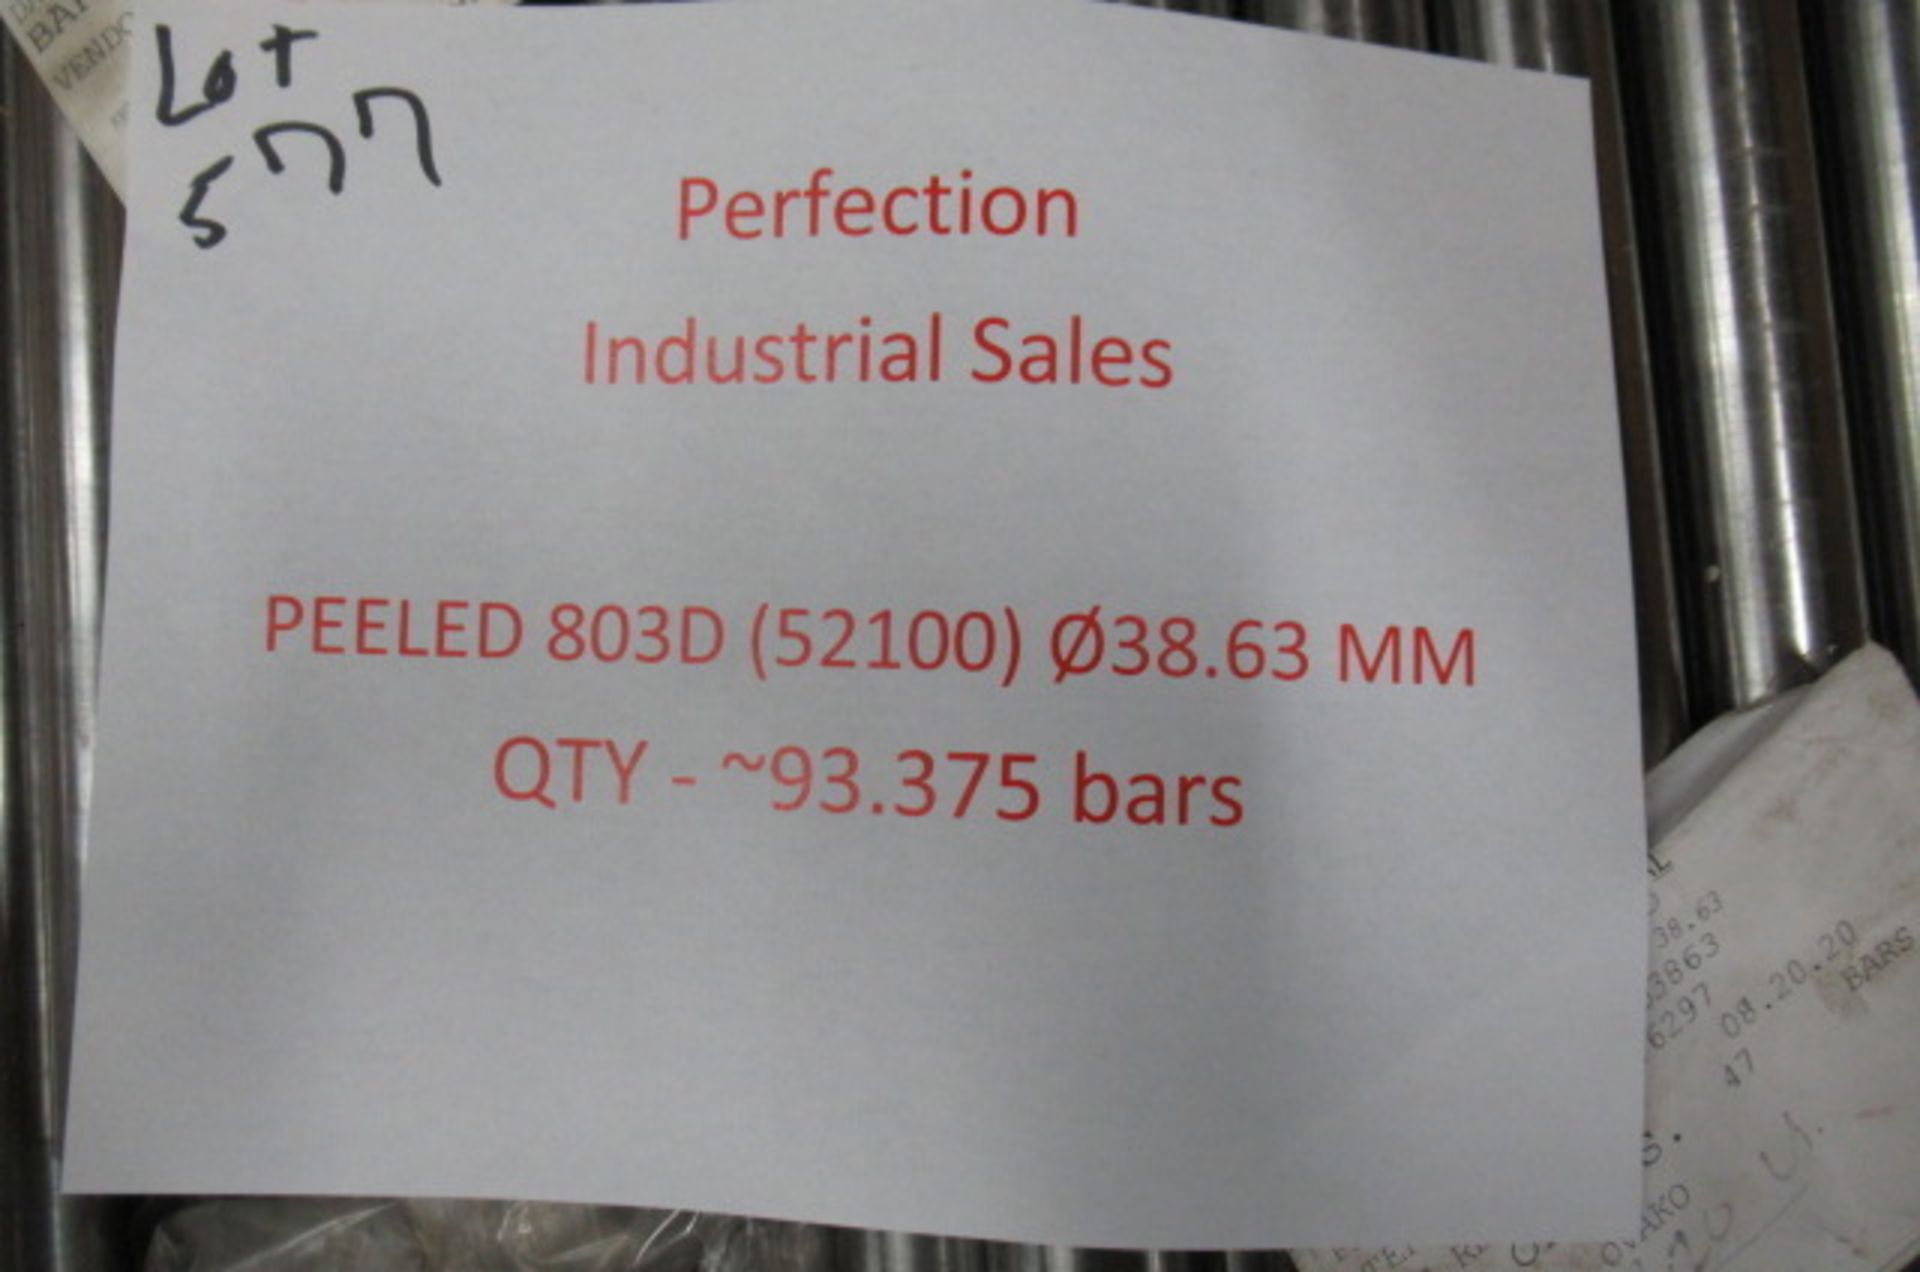 Lot steel round stock Peeled 803D (52100) 38.63mm qty 93